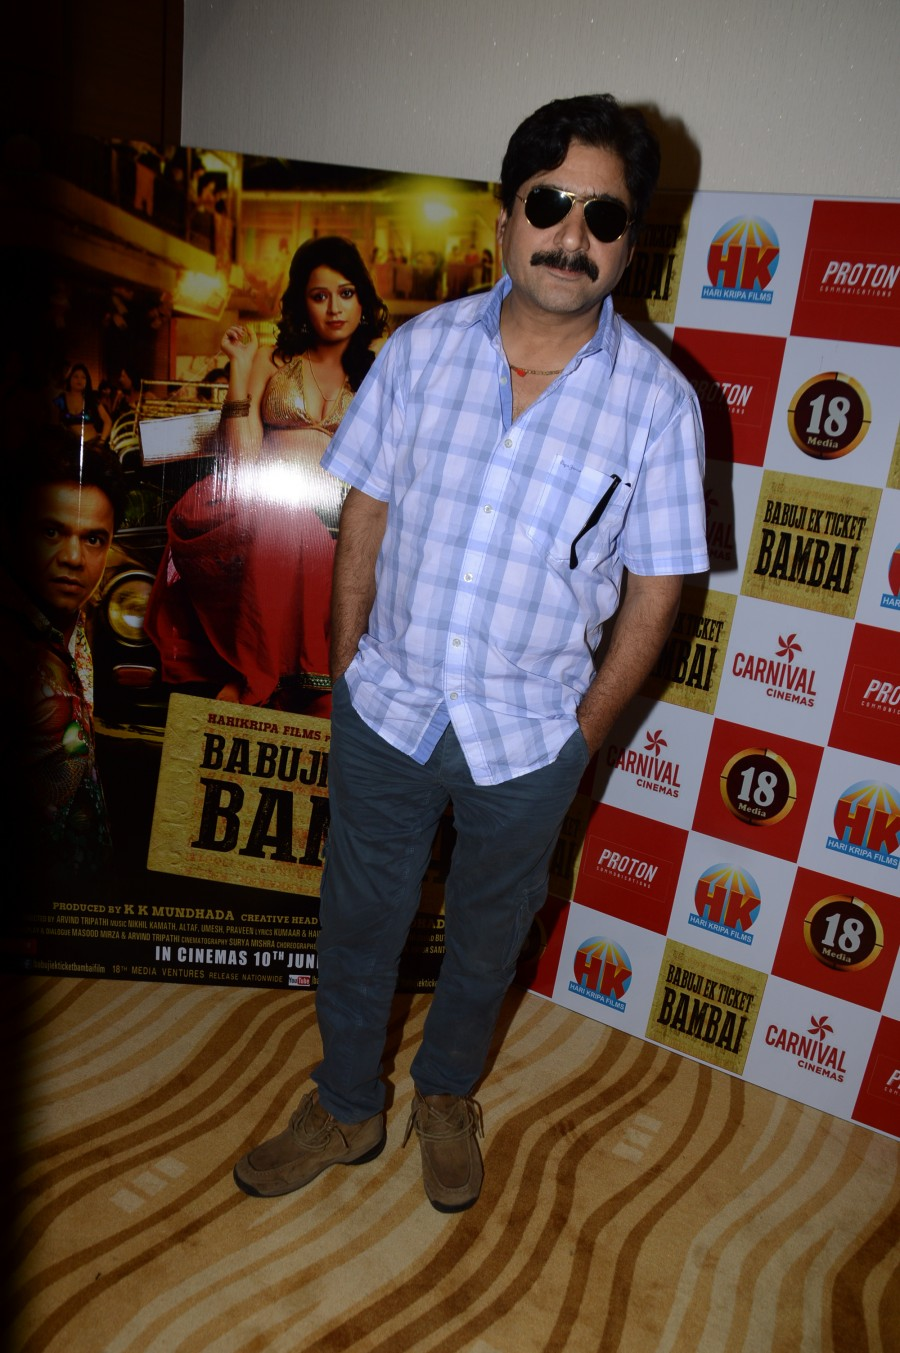 Babuji Ek Ticket Bambai,Babuji Ek Ticket Bambai Trailer launch,Babuji Ek Ticket Bambai Trailer,Babuji Ek Ticket Bambai Trailer launch pics,Babuji Ek Ticket Bambai Trailer launch images,Babuji Ek Ticket Bambai Trailer launch photos,Babuji Ek Ticket Bambai